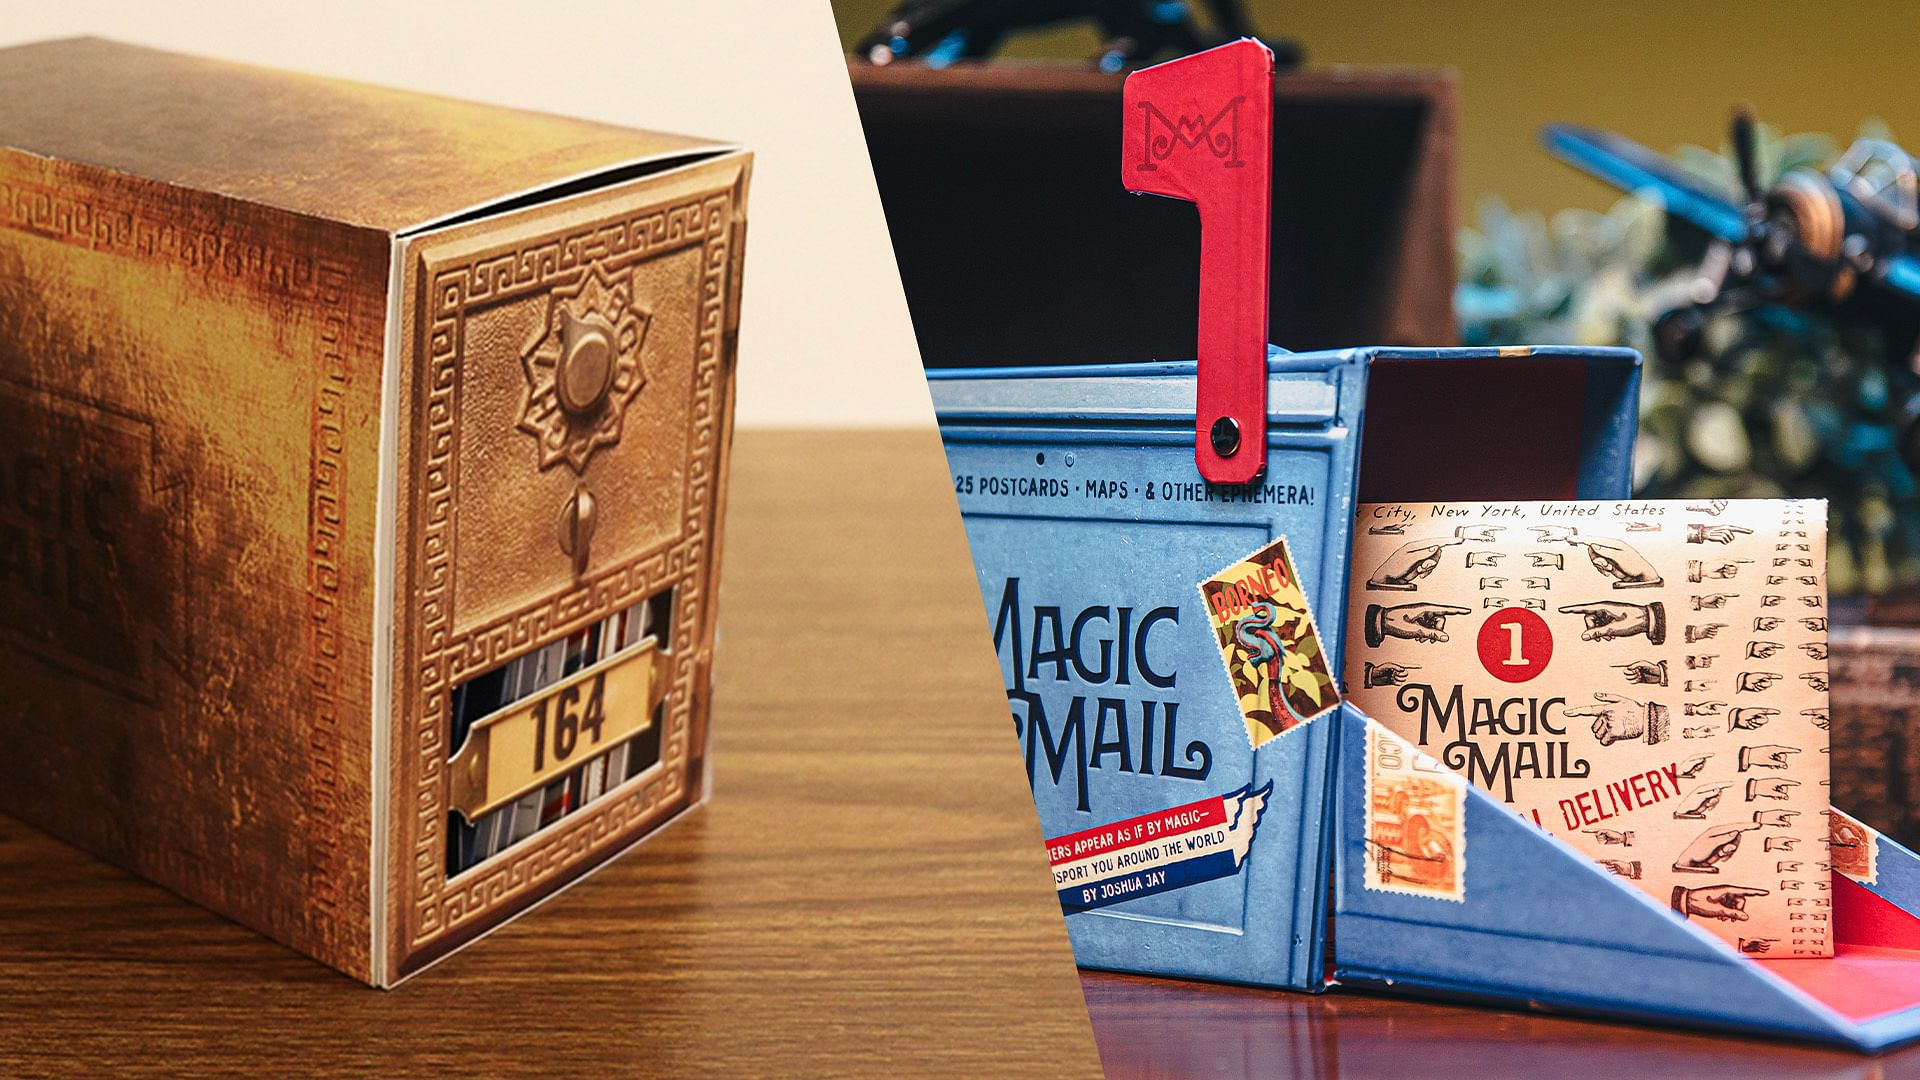 The Evolution of Magic Mail